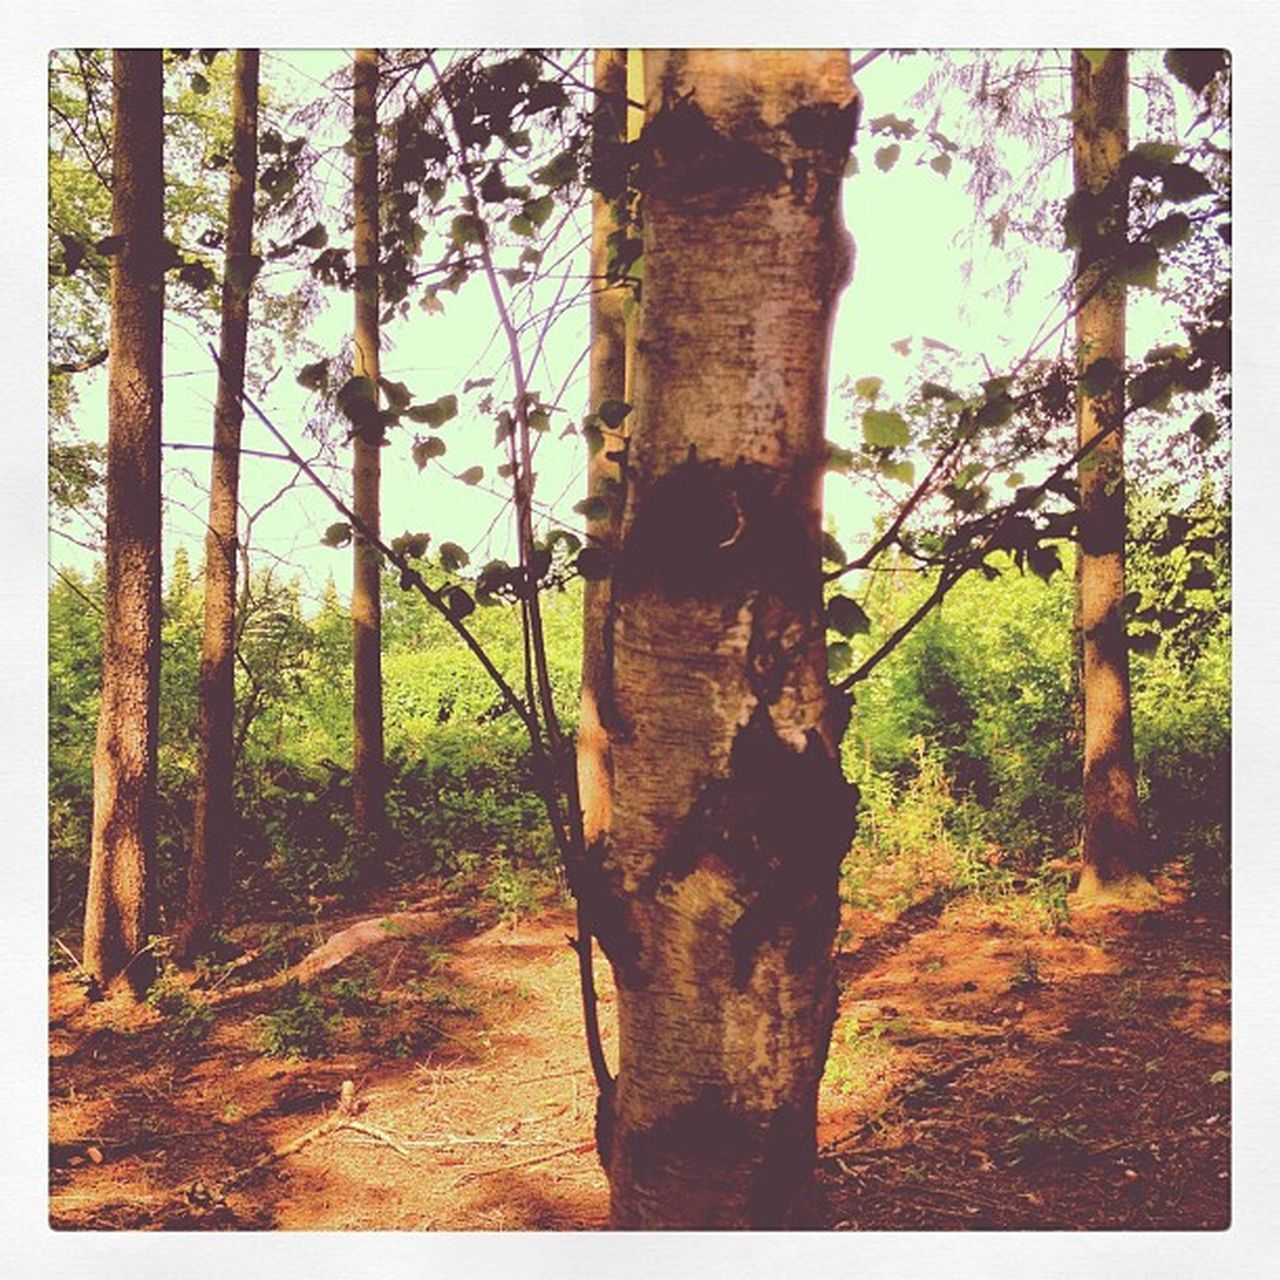 tree, tree trunk, forest, nature, day, growth, no people, outdoors, sunlight, landscape